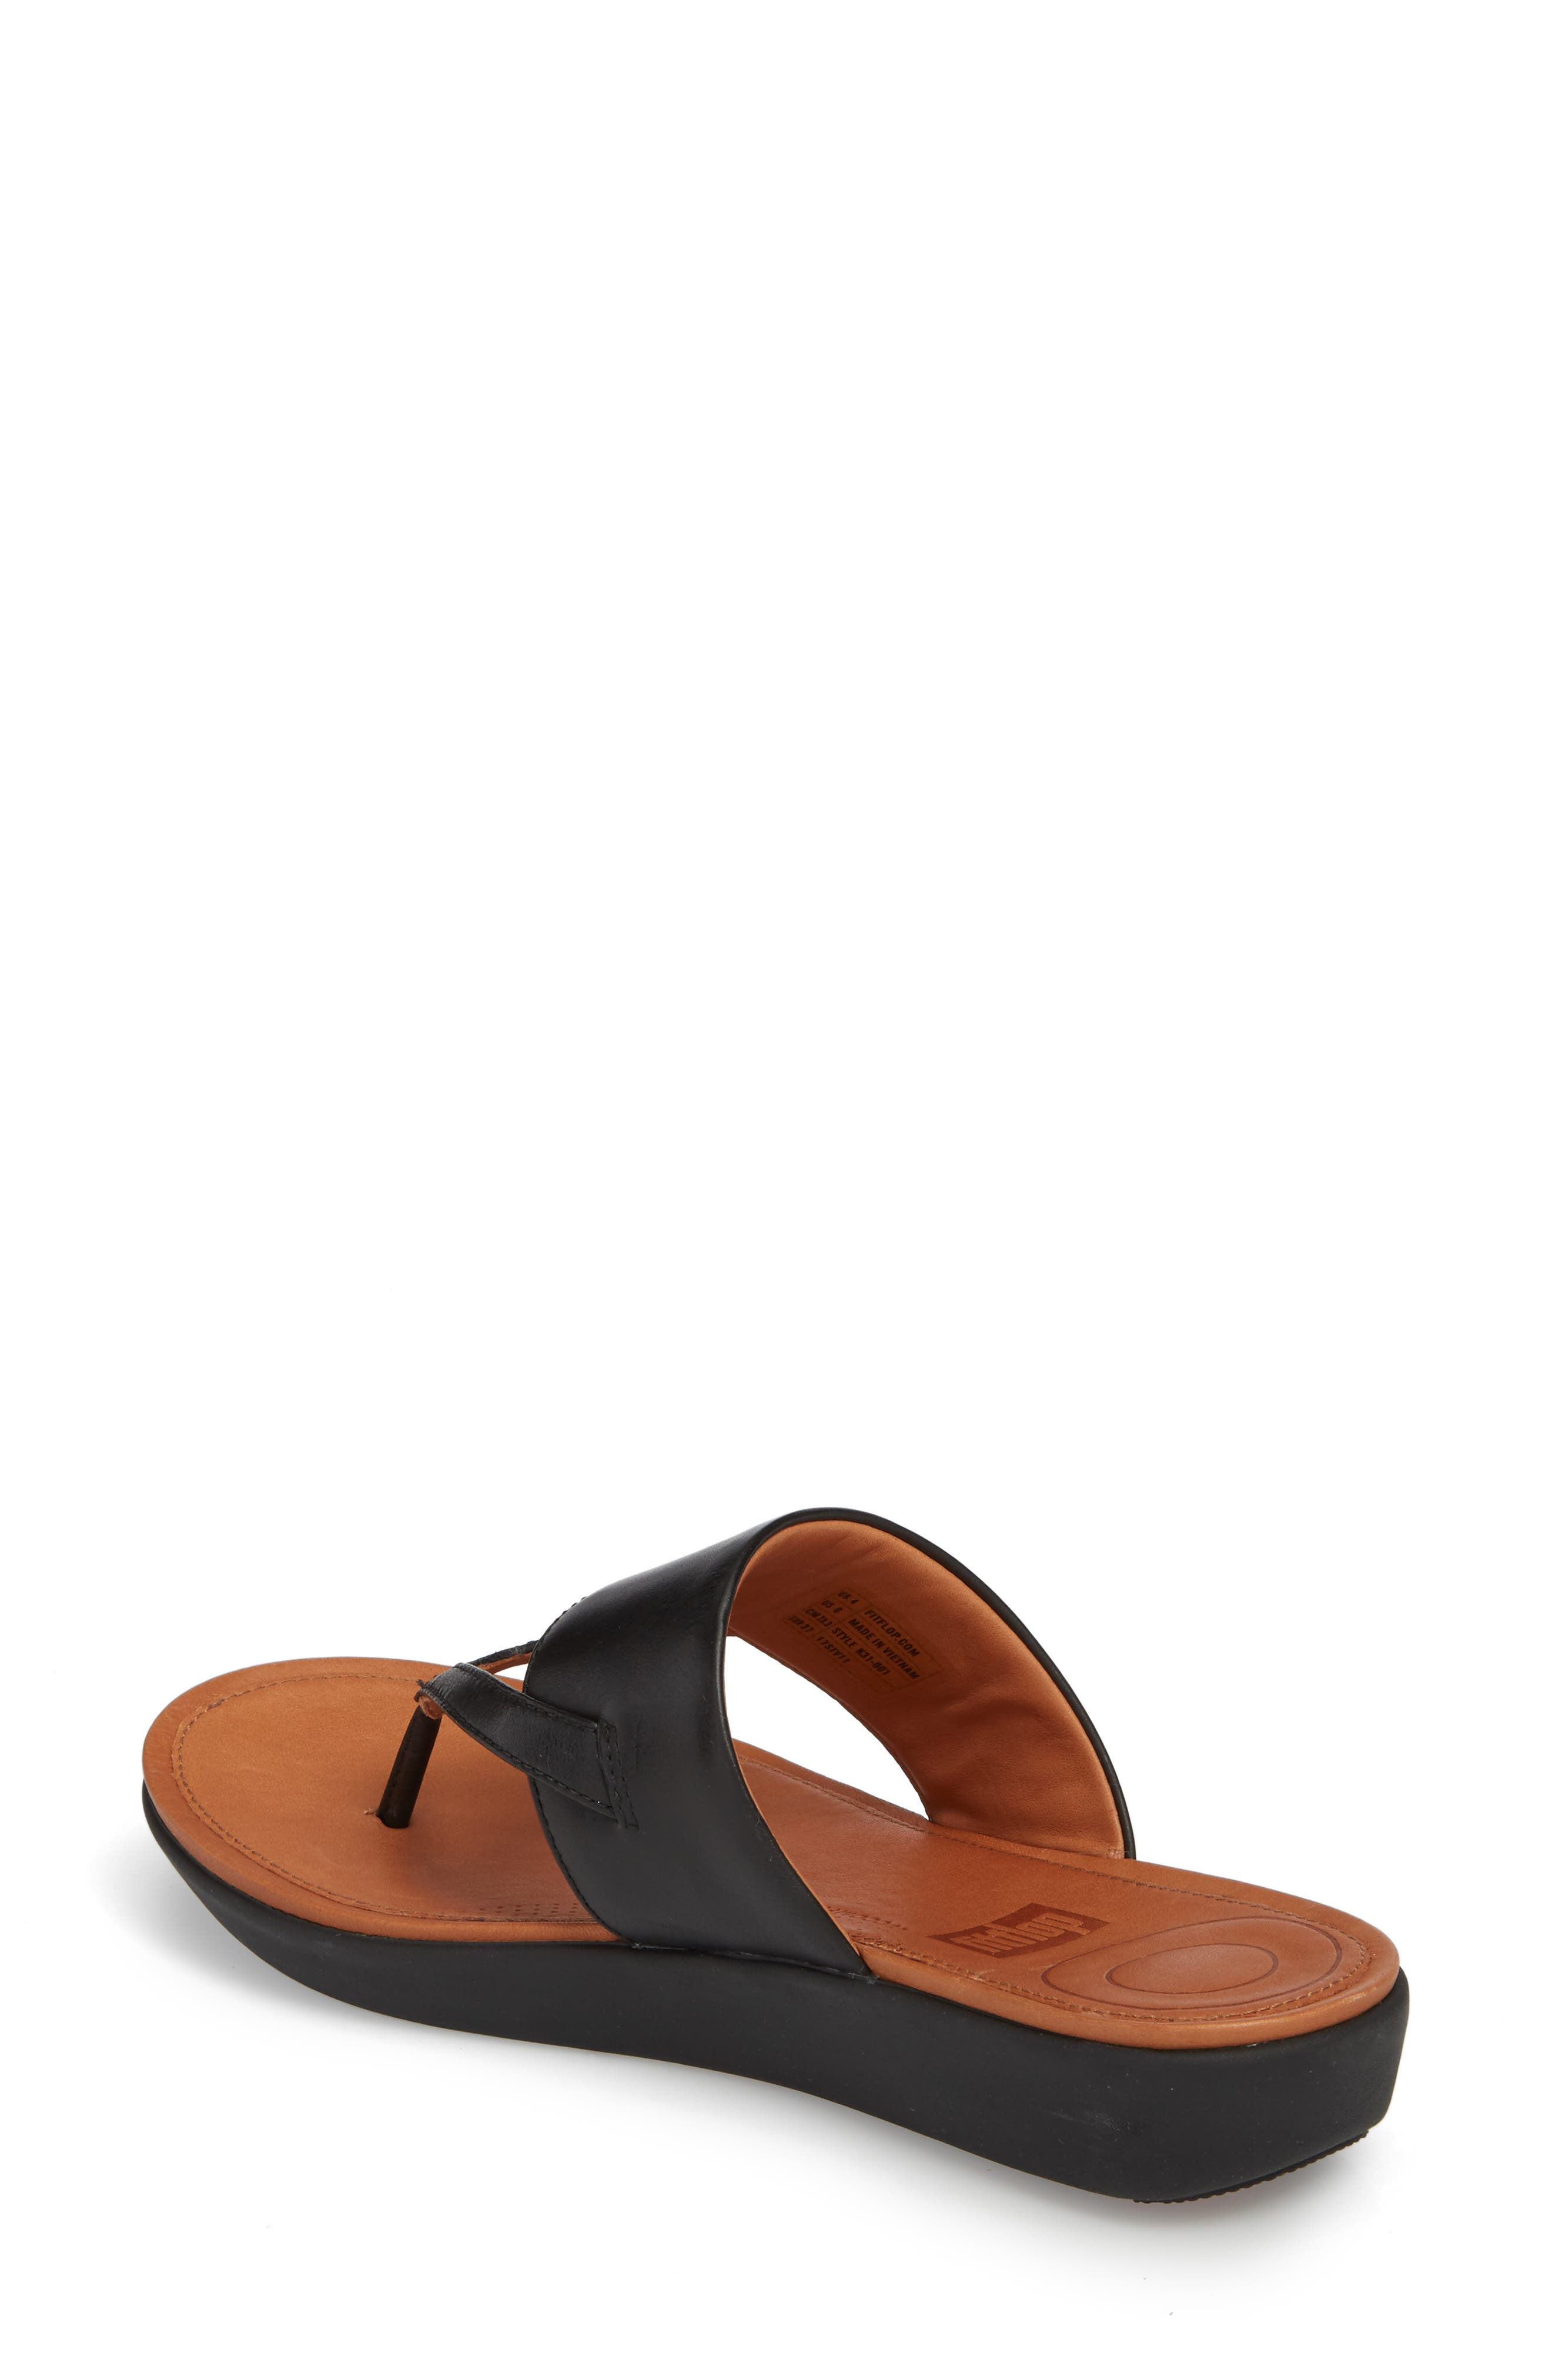 Delta Sandal,                             Alternate thumbnail 2, color,                             001